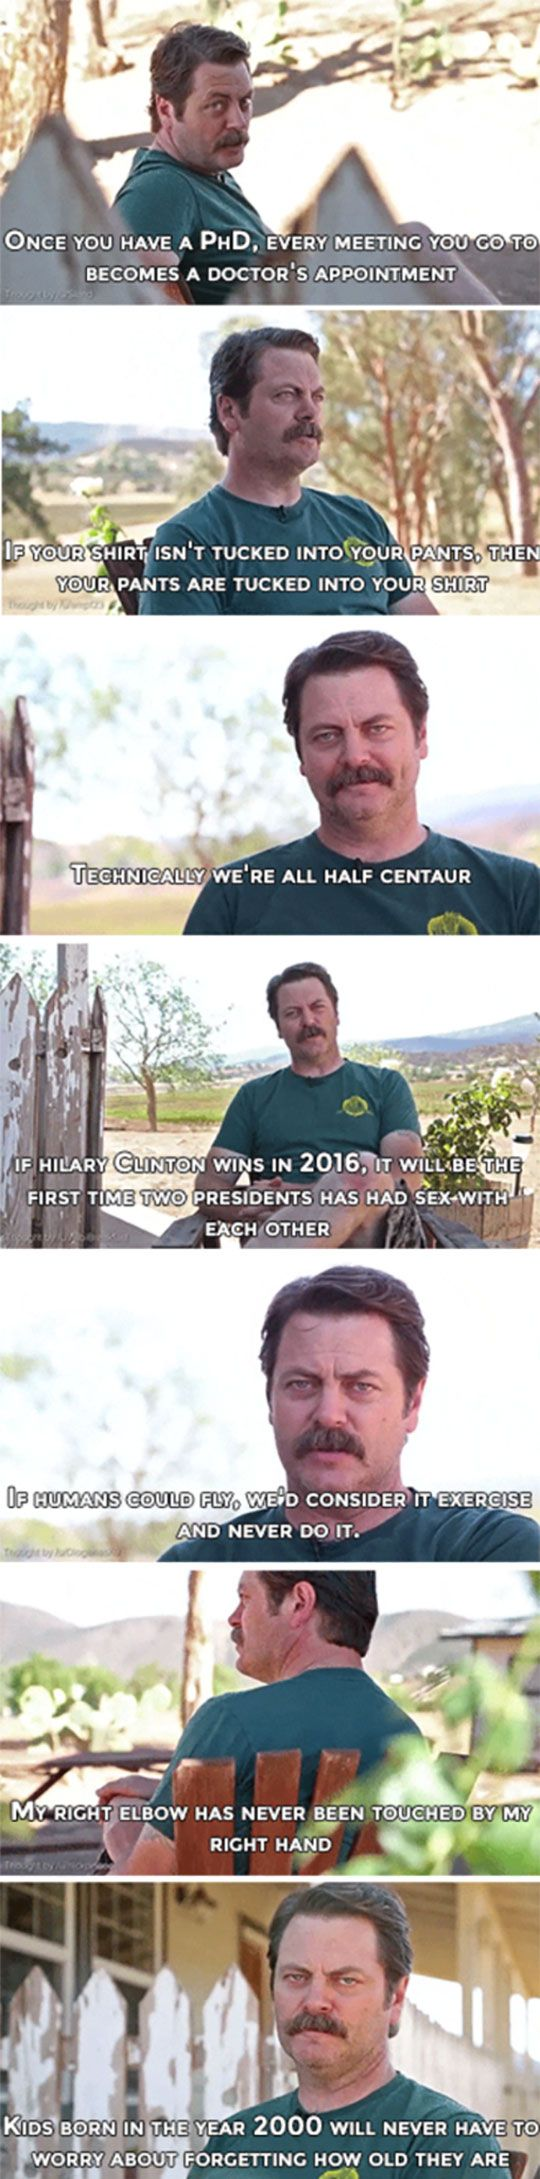 Nick Offerman Shares Some Deep Thoughts